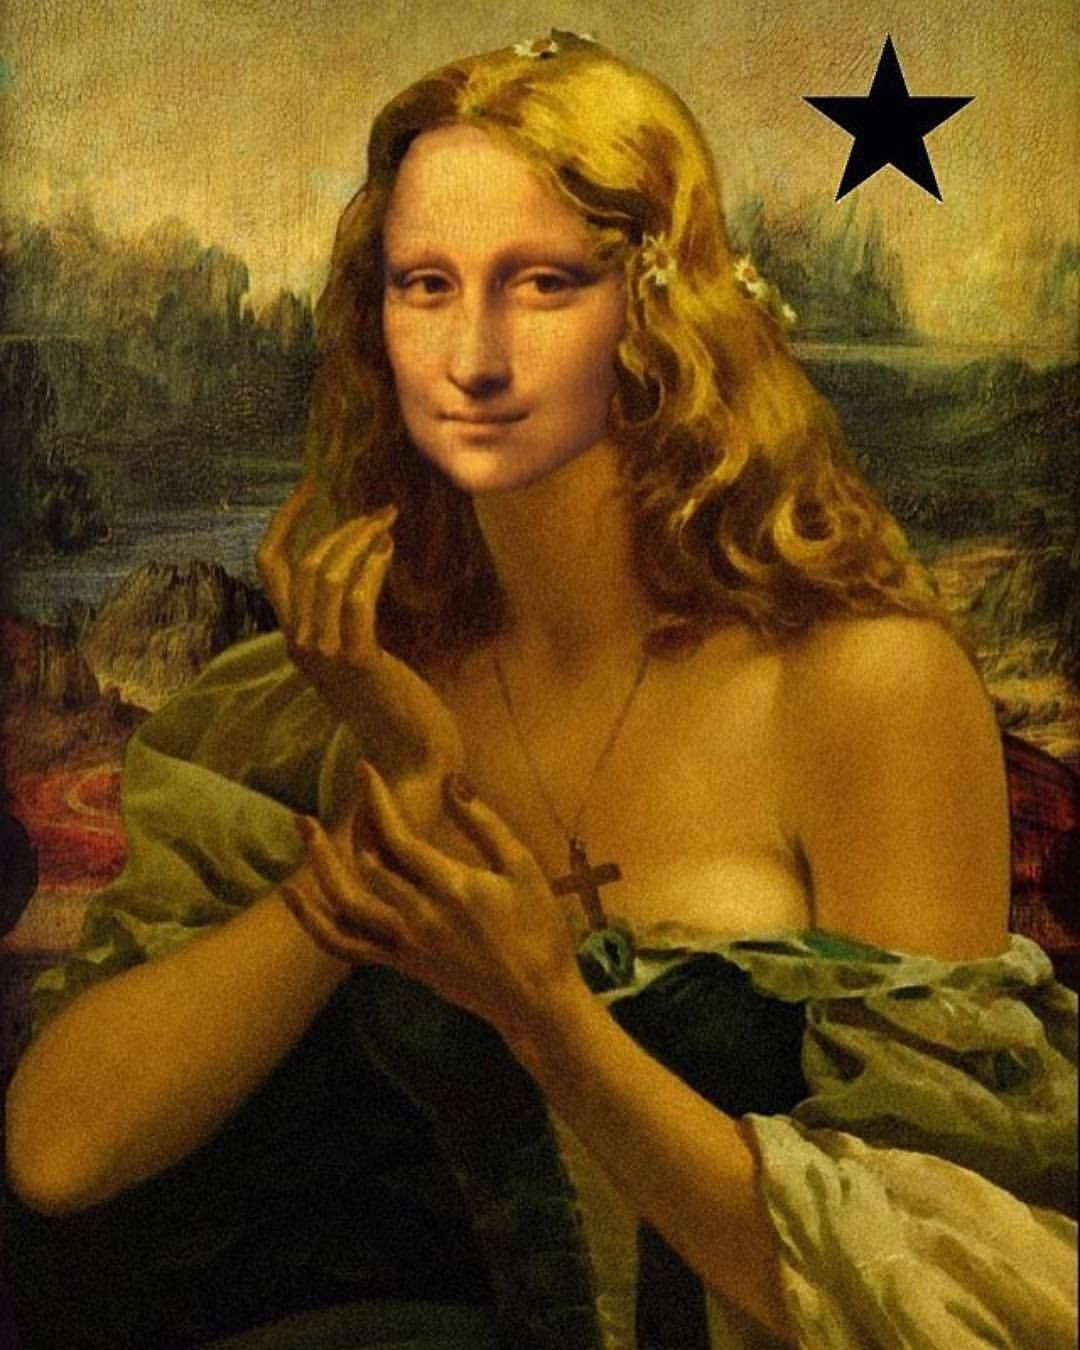 "raydawn13 "" Ohhhh she so pretty goddess ❤ rideyour wholenessiswhoyouare Repost thefaerylabyrinth ムムムMona Lisa… The Mona Lisa is a"